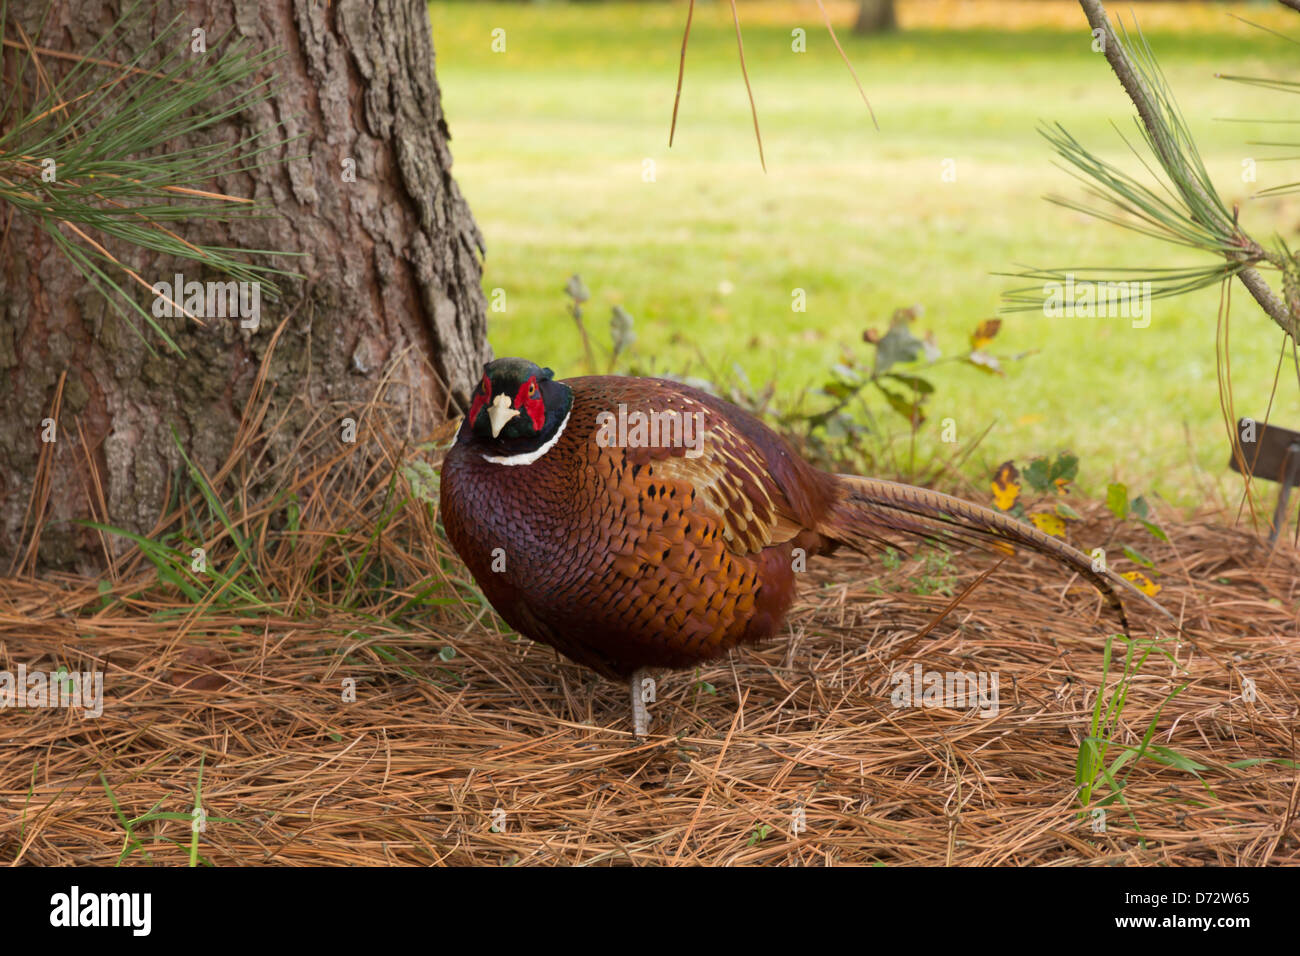 Male Pheasant by a tree - Stock Image